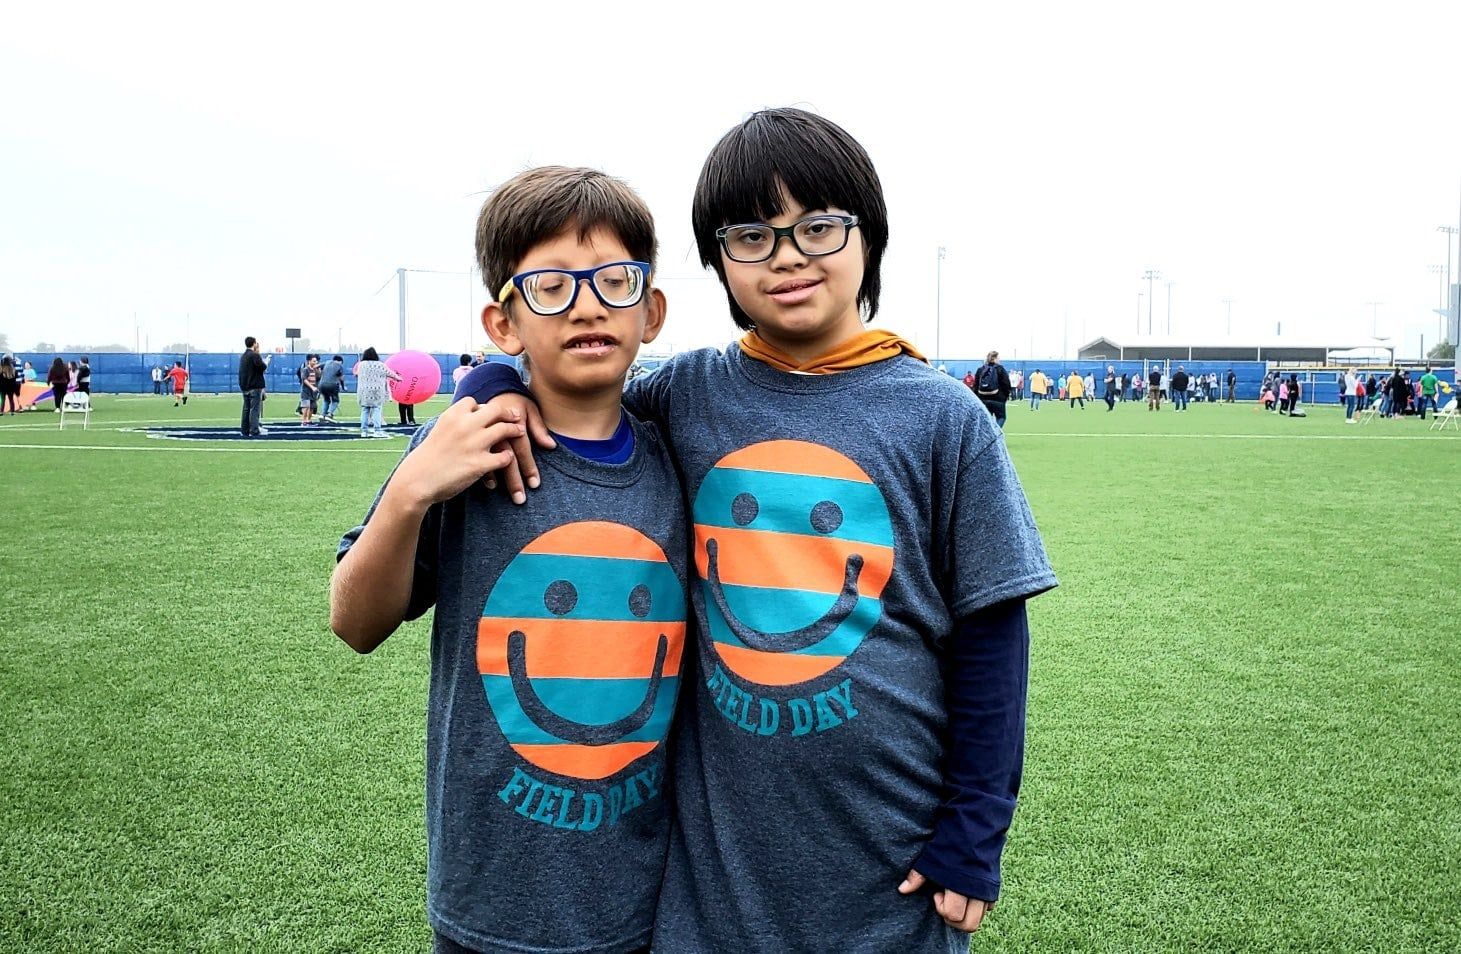 Terra Vista middle school students pose during field day